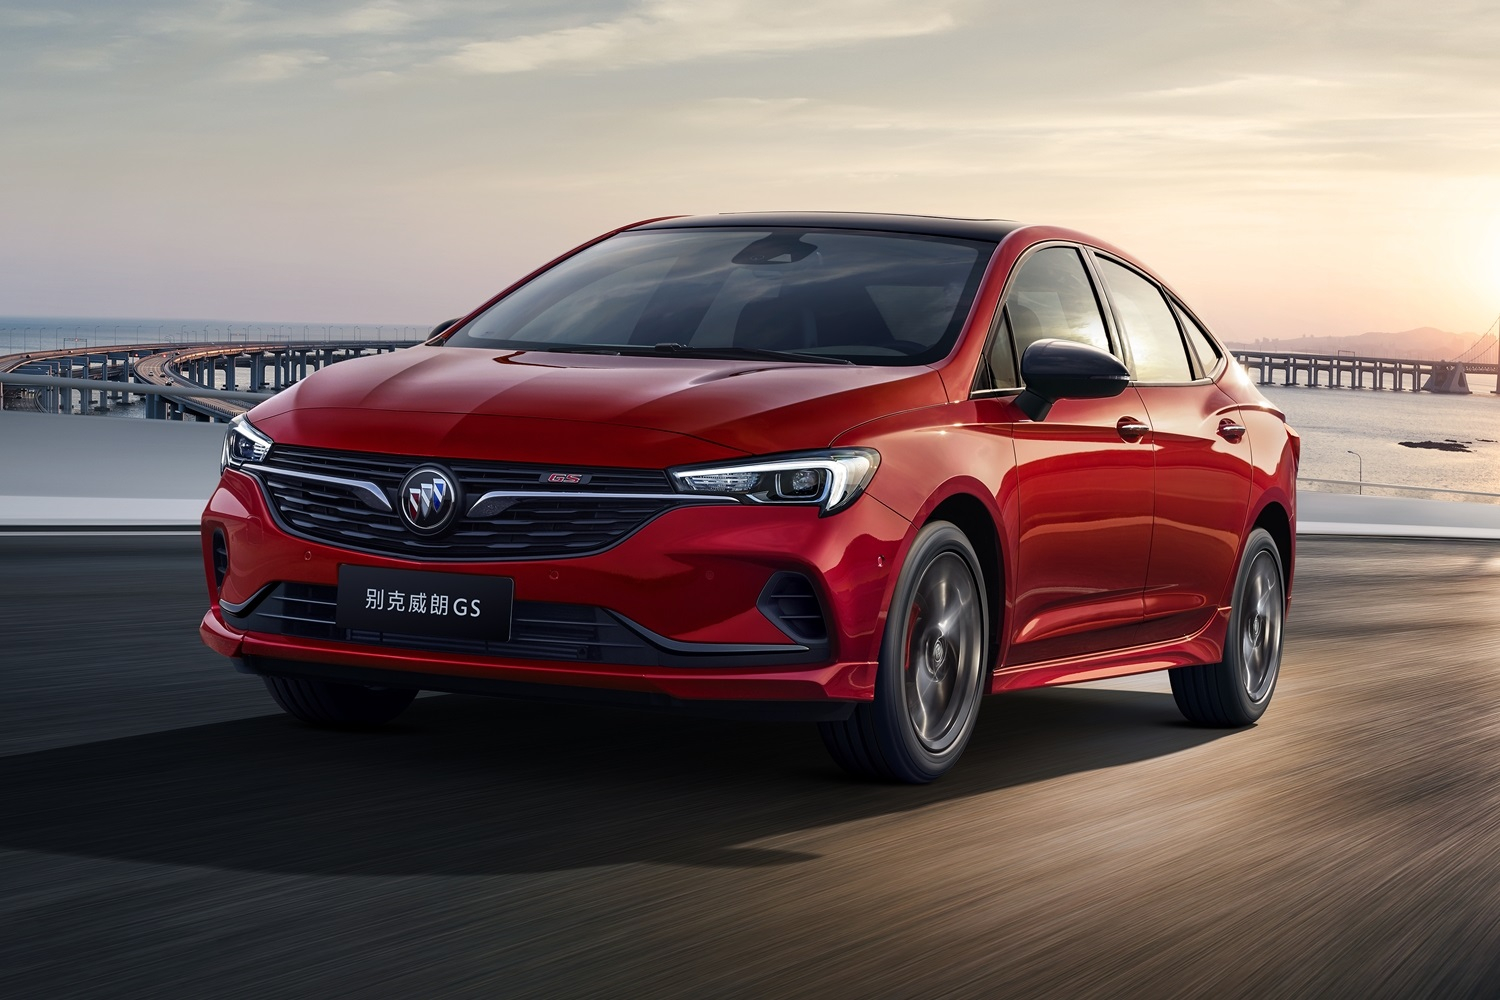 New 2021 Buick Verano Gs Launches In China | Gm Authority What Does A New 2021 Buick Verano Look Like